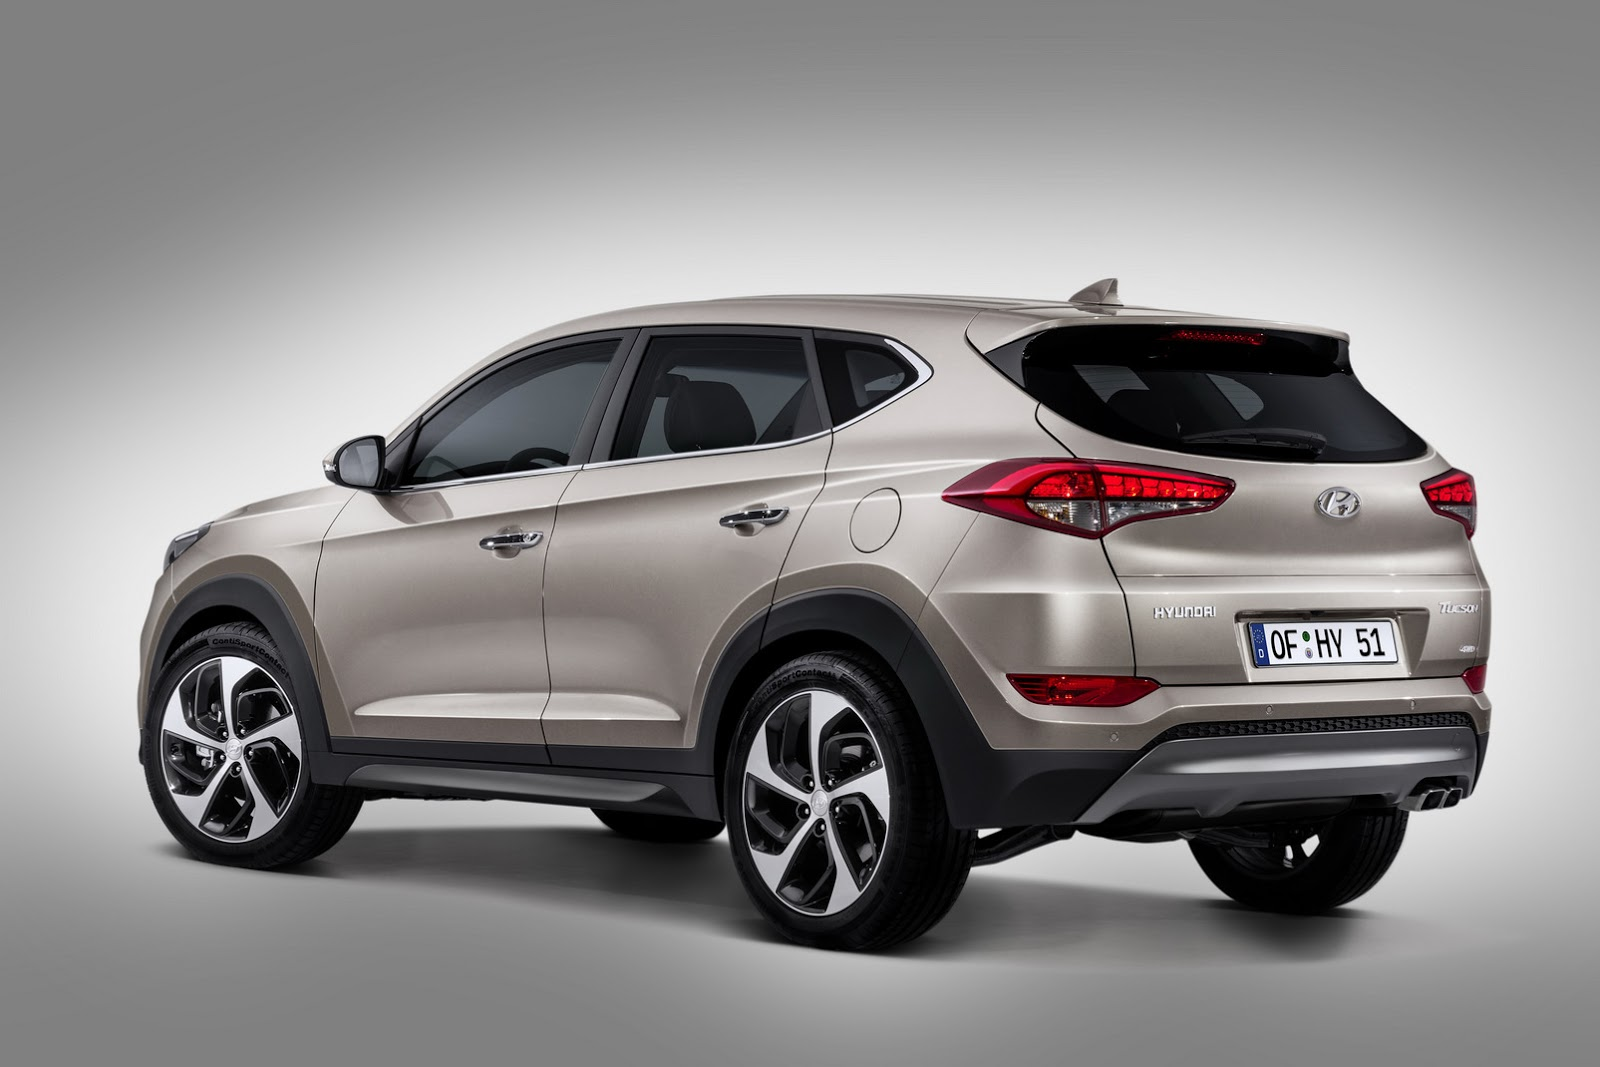 Hyundai will release two new crossovers by 2018